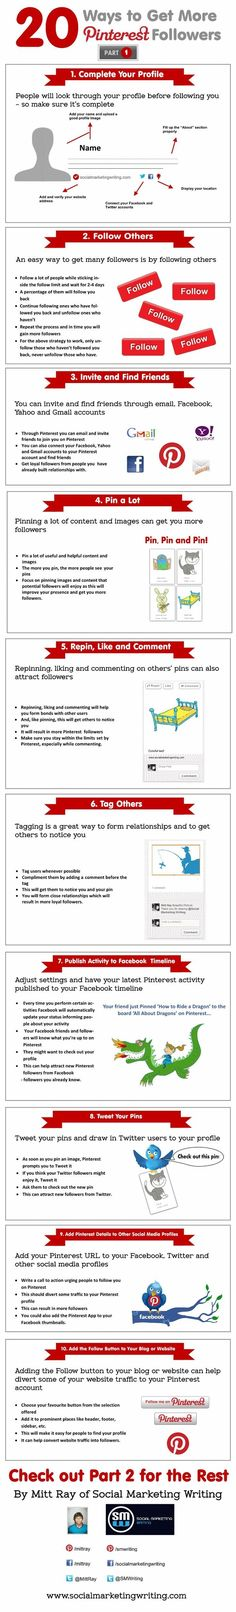 20 Ways to Increase Pinterest Followers